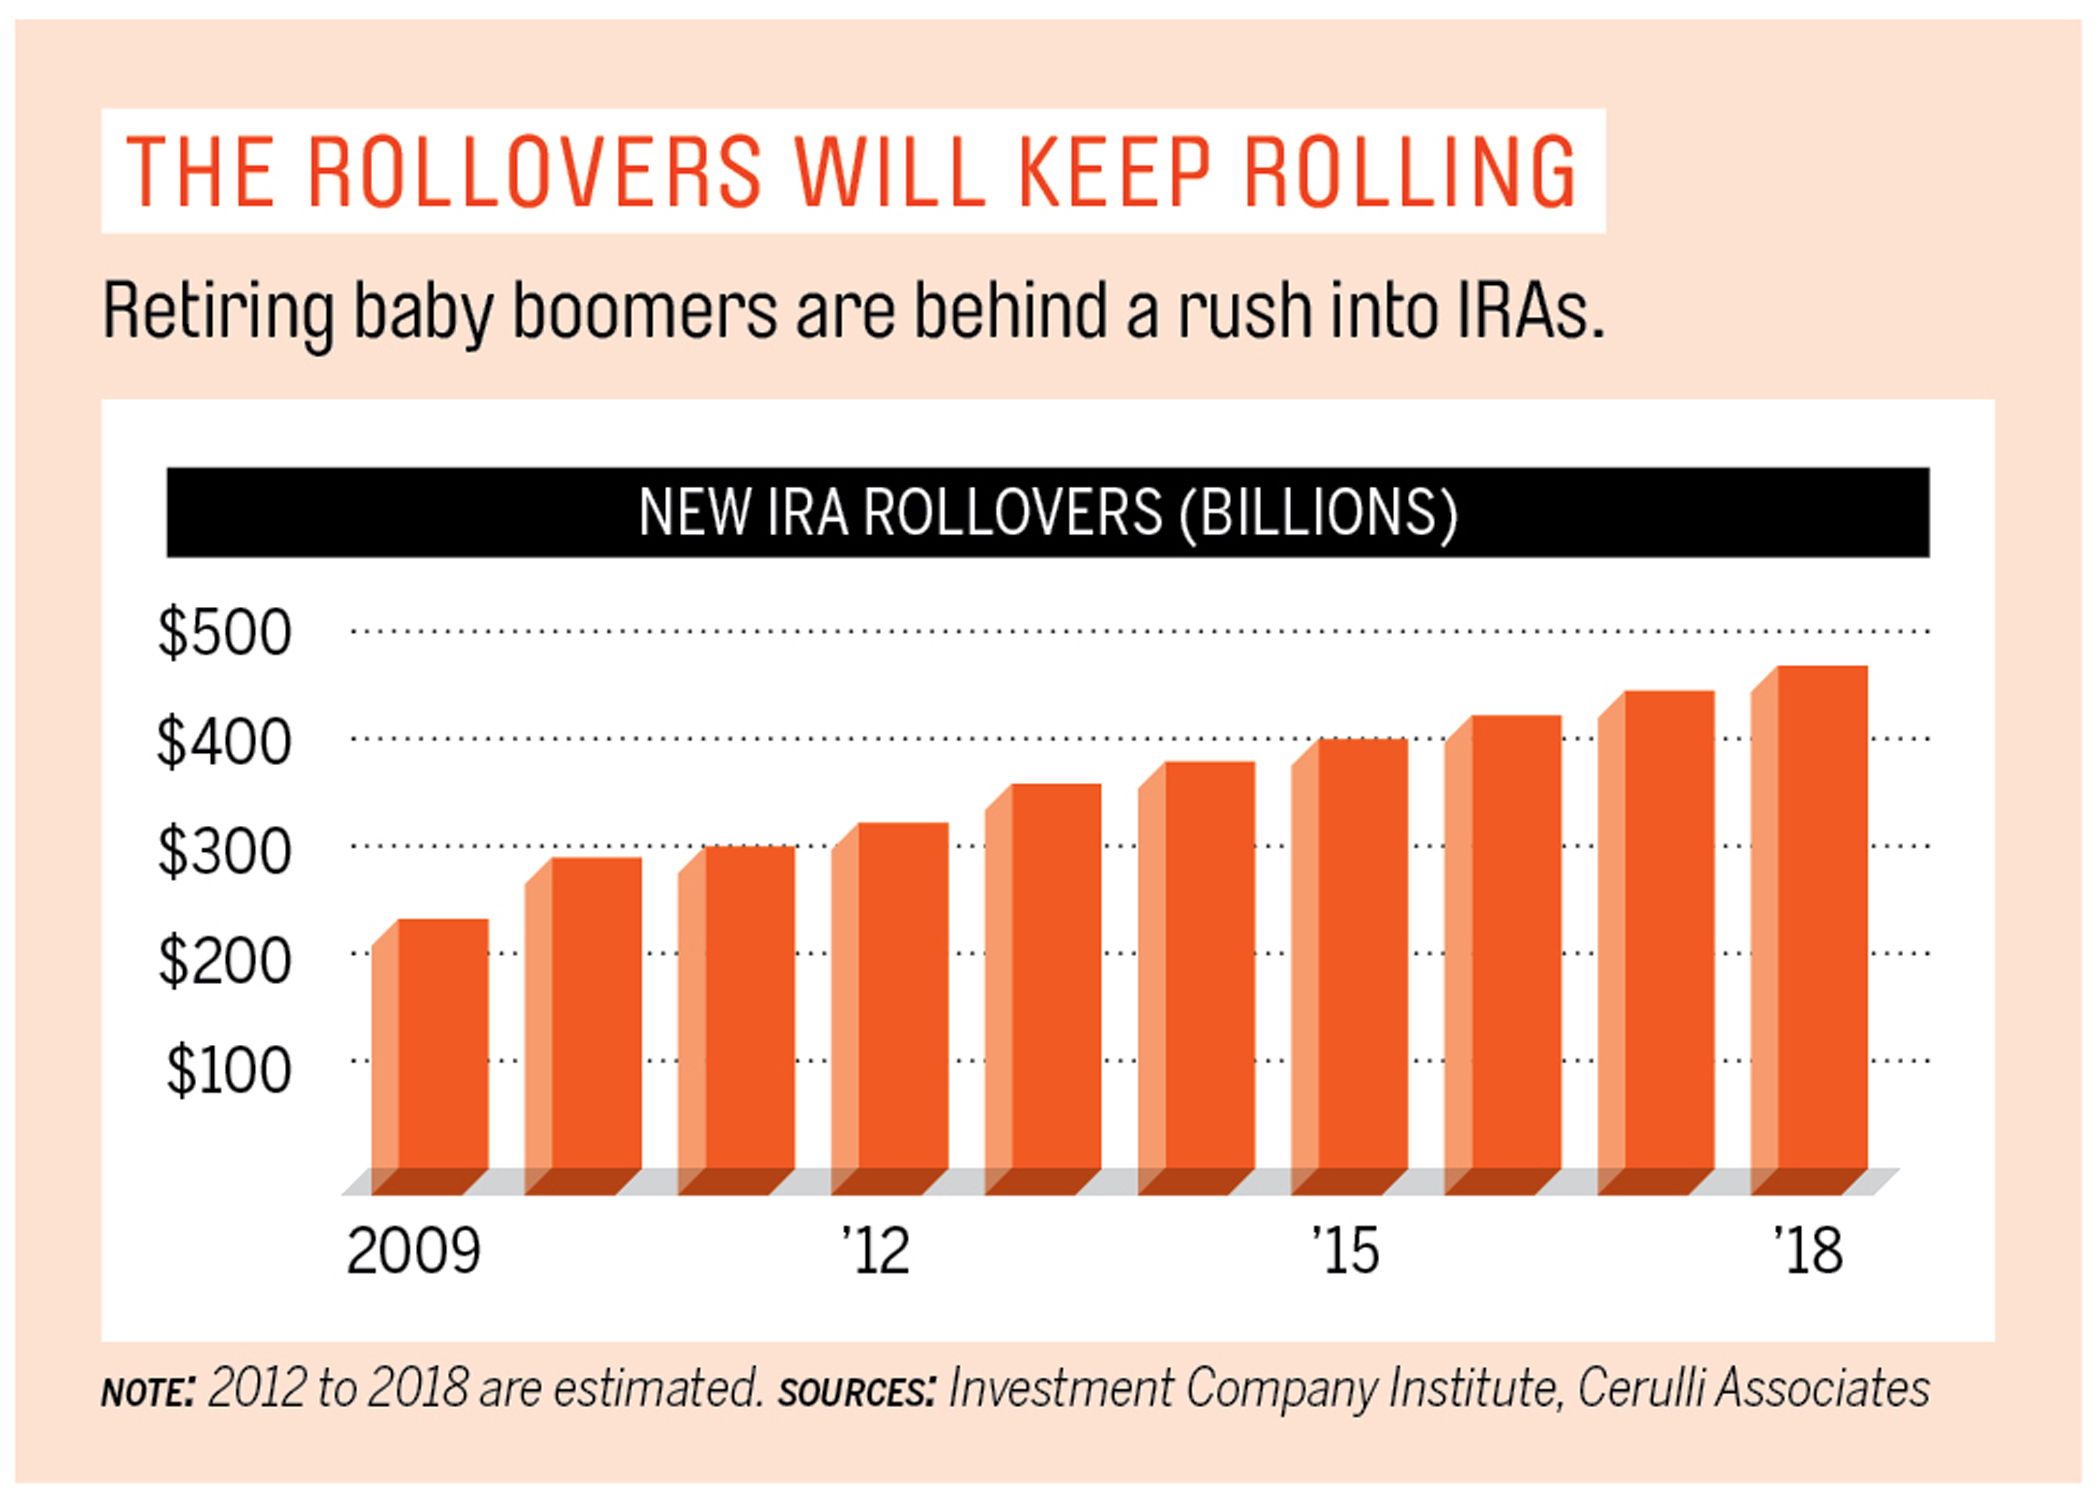 The rollovers will keep